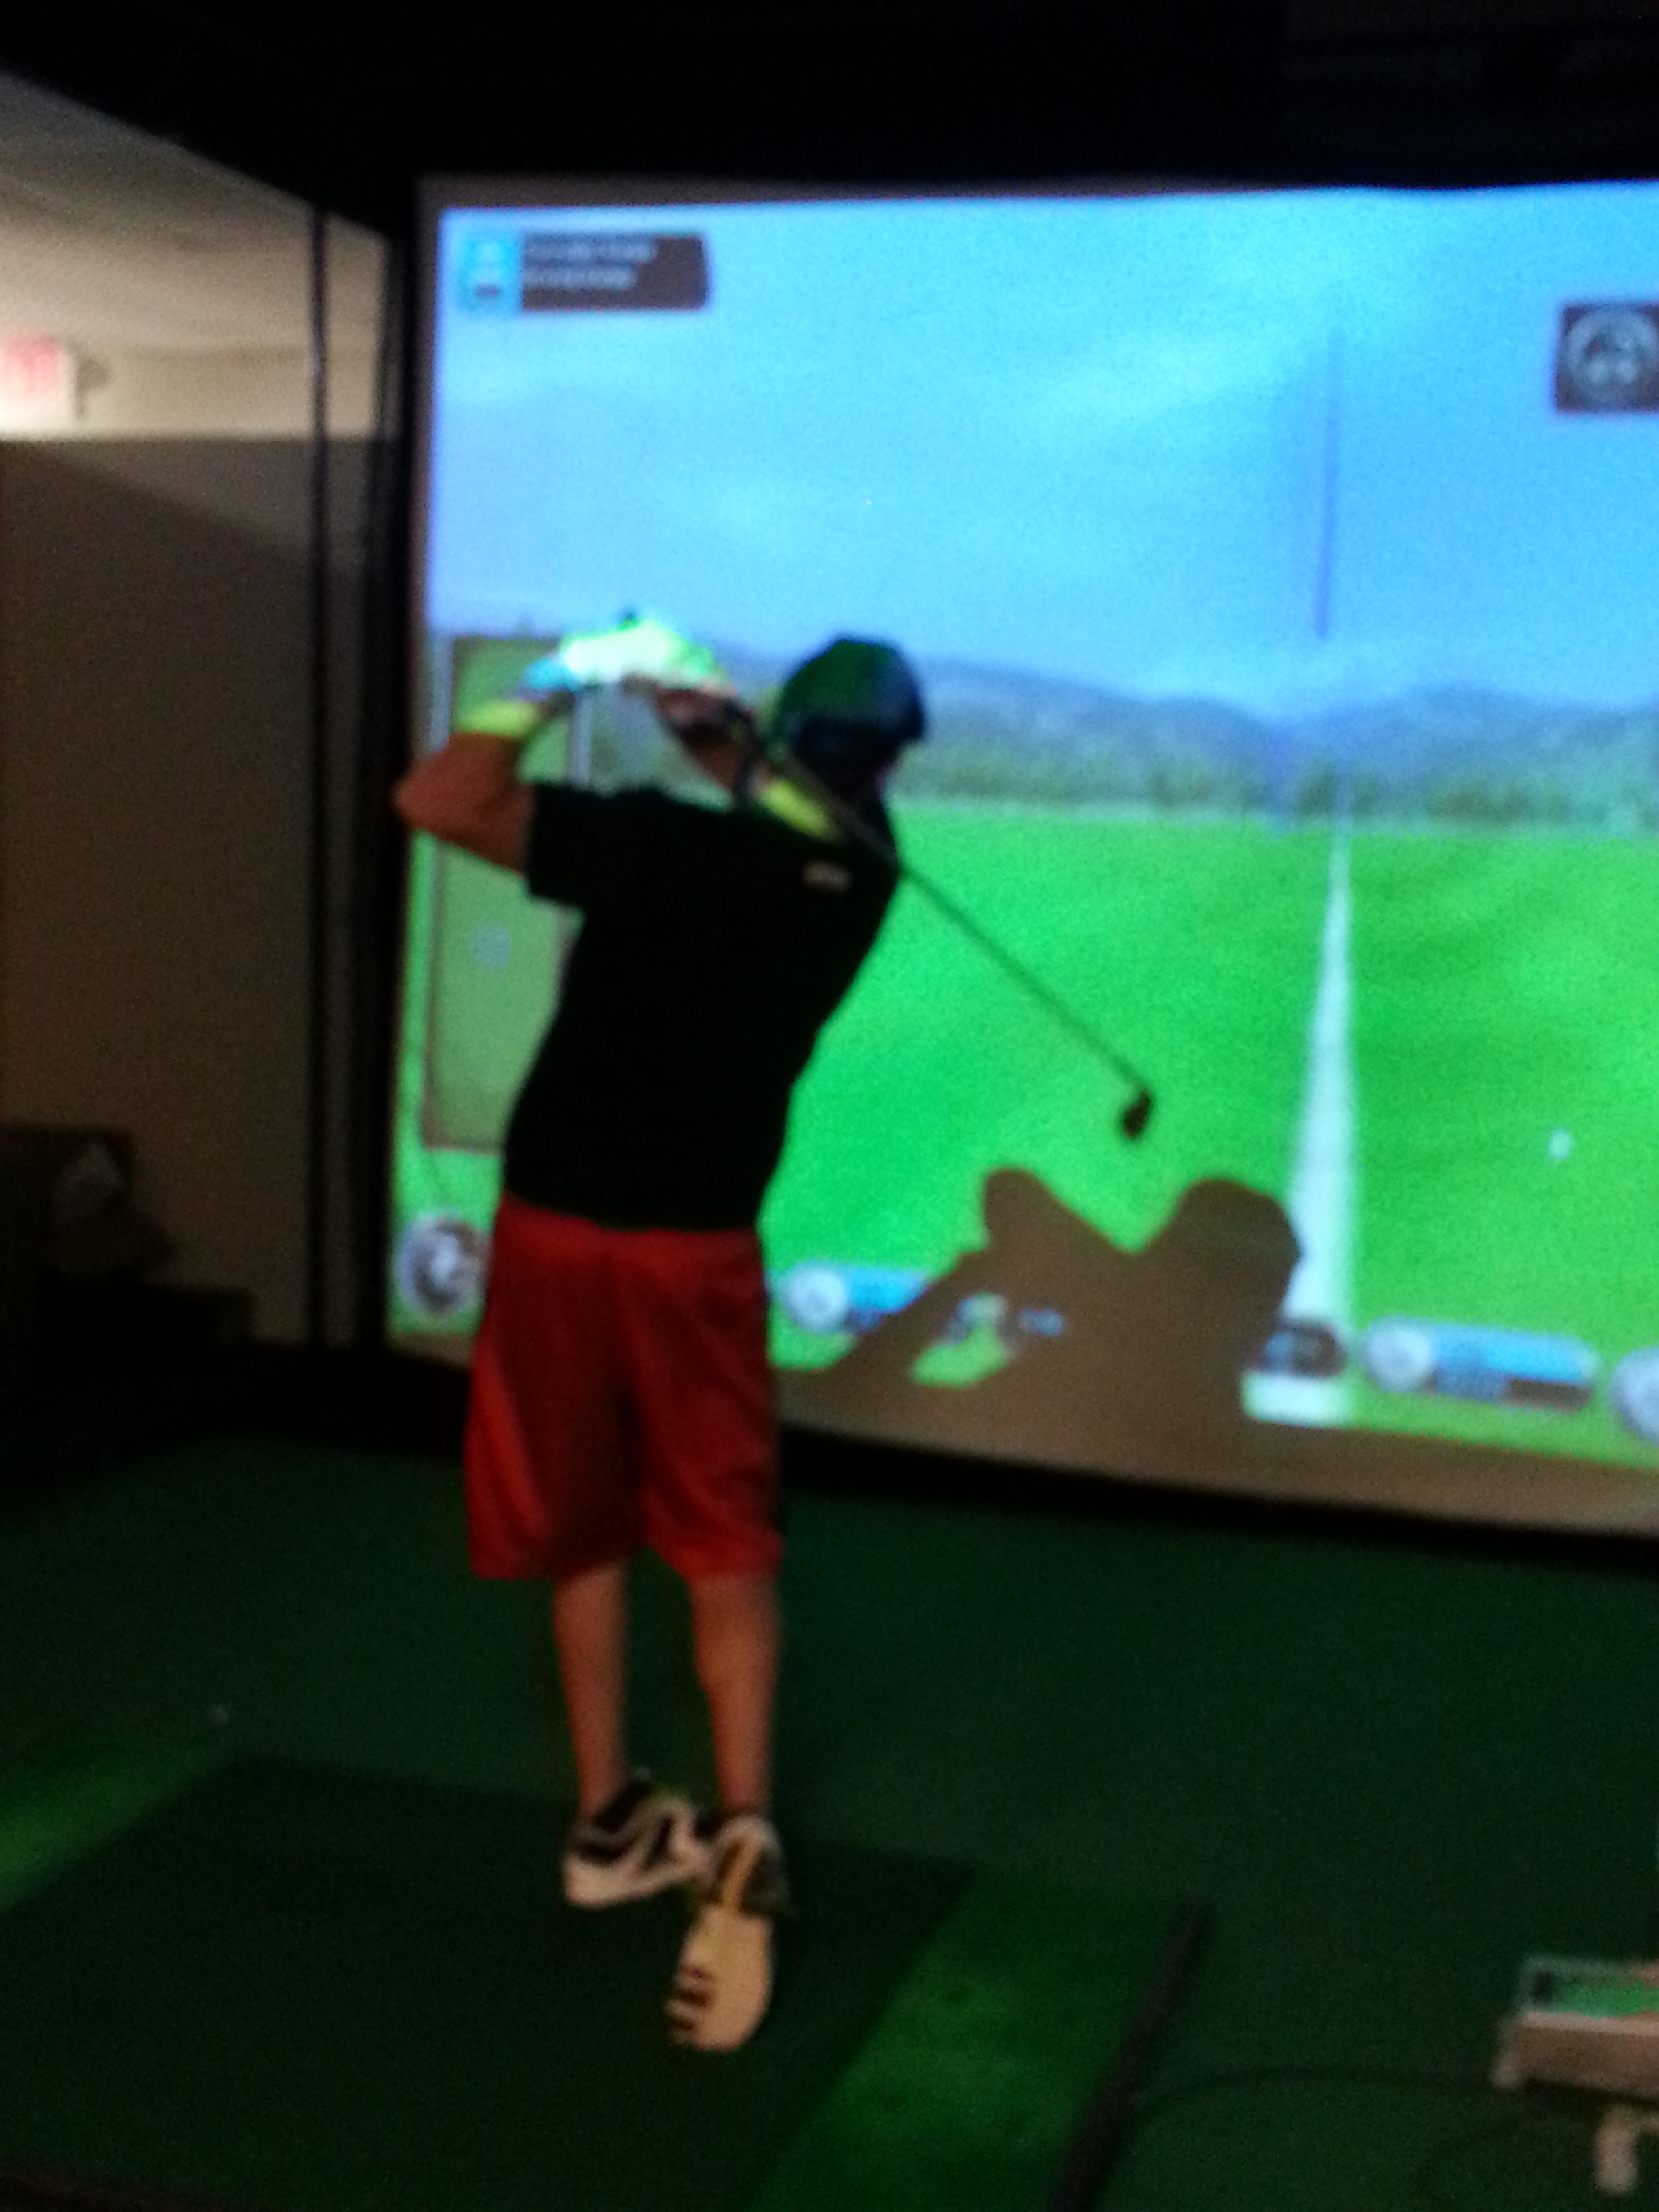 Golf simulator at Golf Etc Avon, Indiana